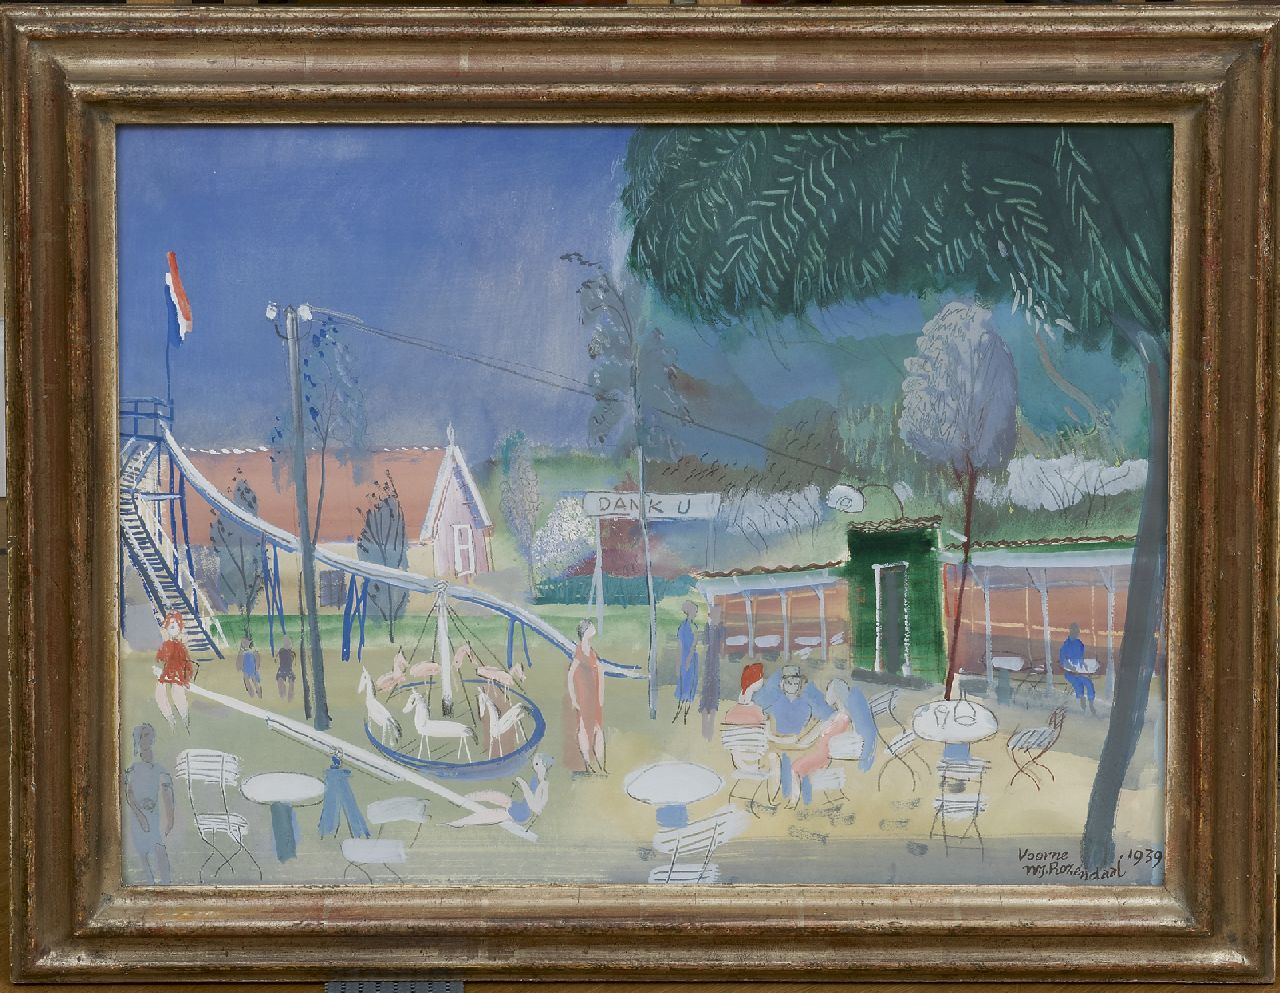 Rozendaal W.J.  | 'Willem' Jacob Rozendaal, A playground, Voorne, gouache on paper 40.0 x 51.2 cm, signed l.r. and dated 'Voorne' 1939